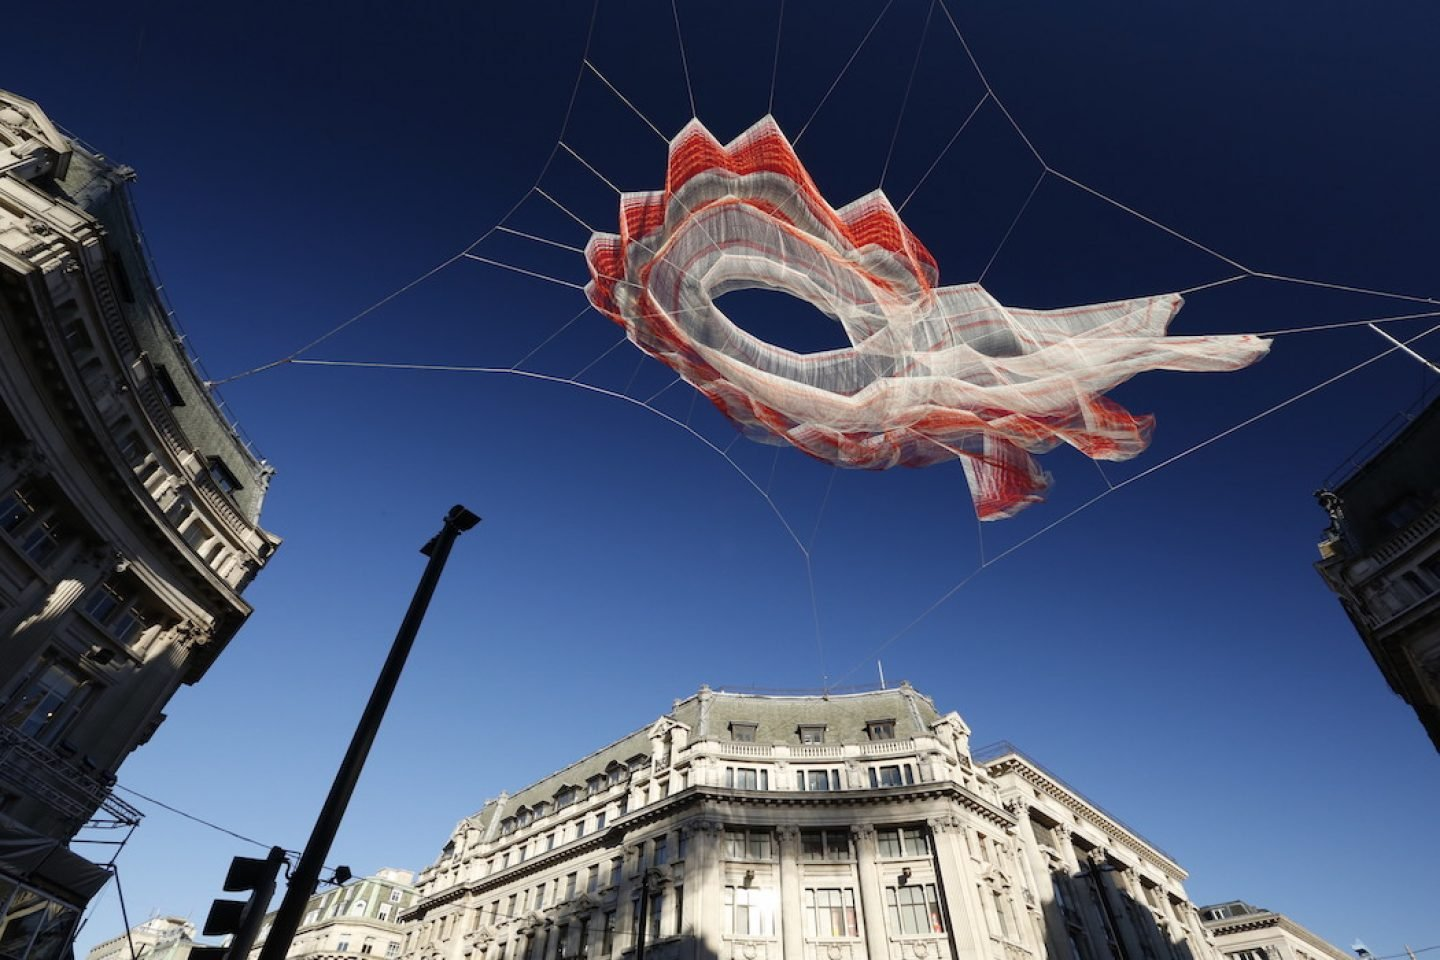 StudioEchelman_London_0807_PhotoEmaPeter